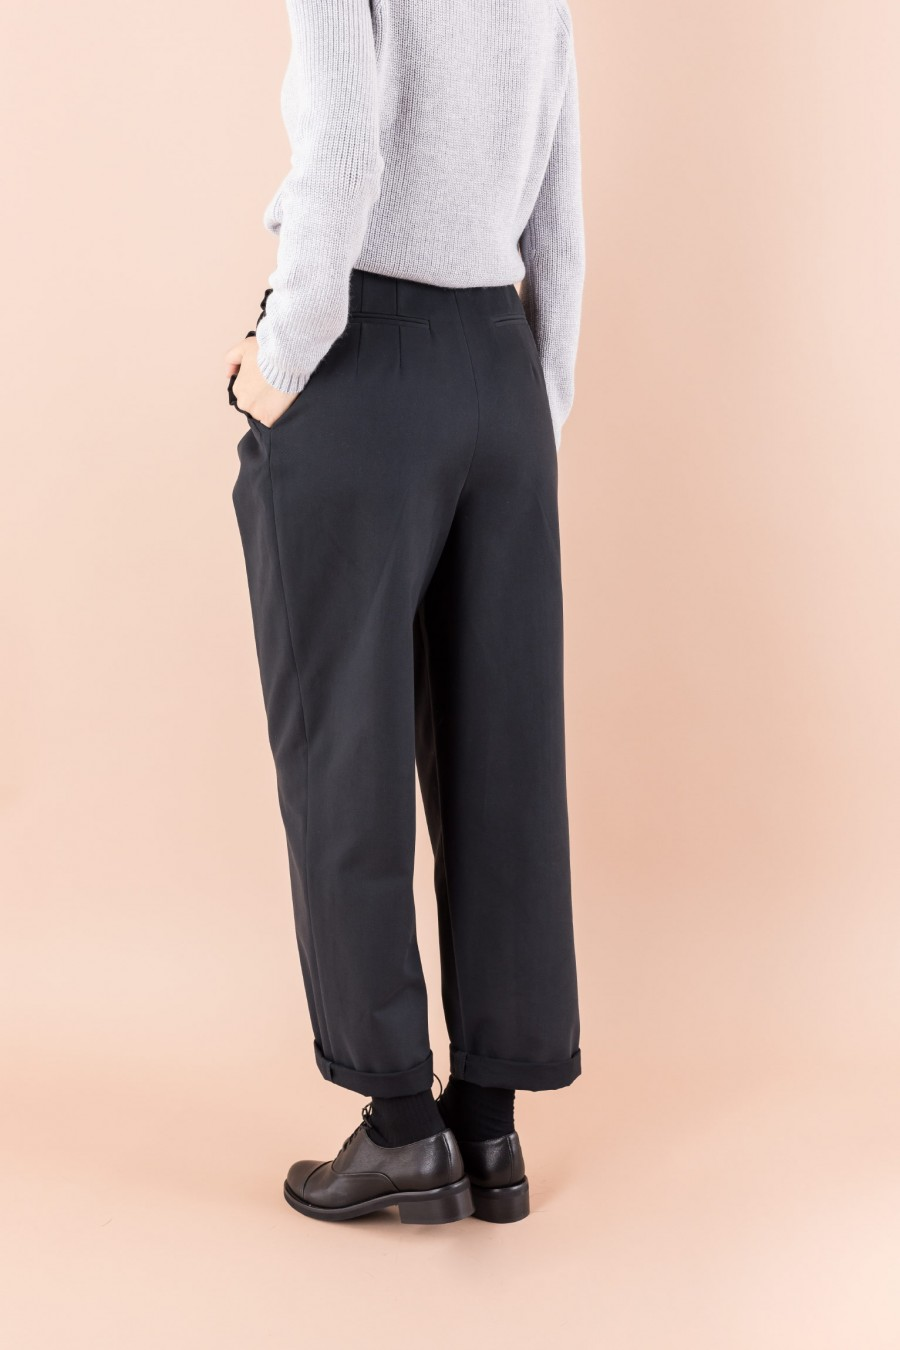 Elegant blue trousers with ruffles